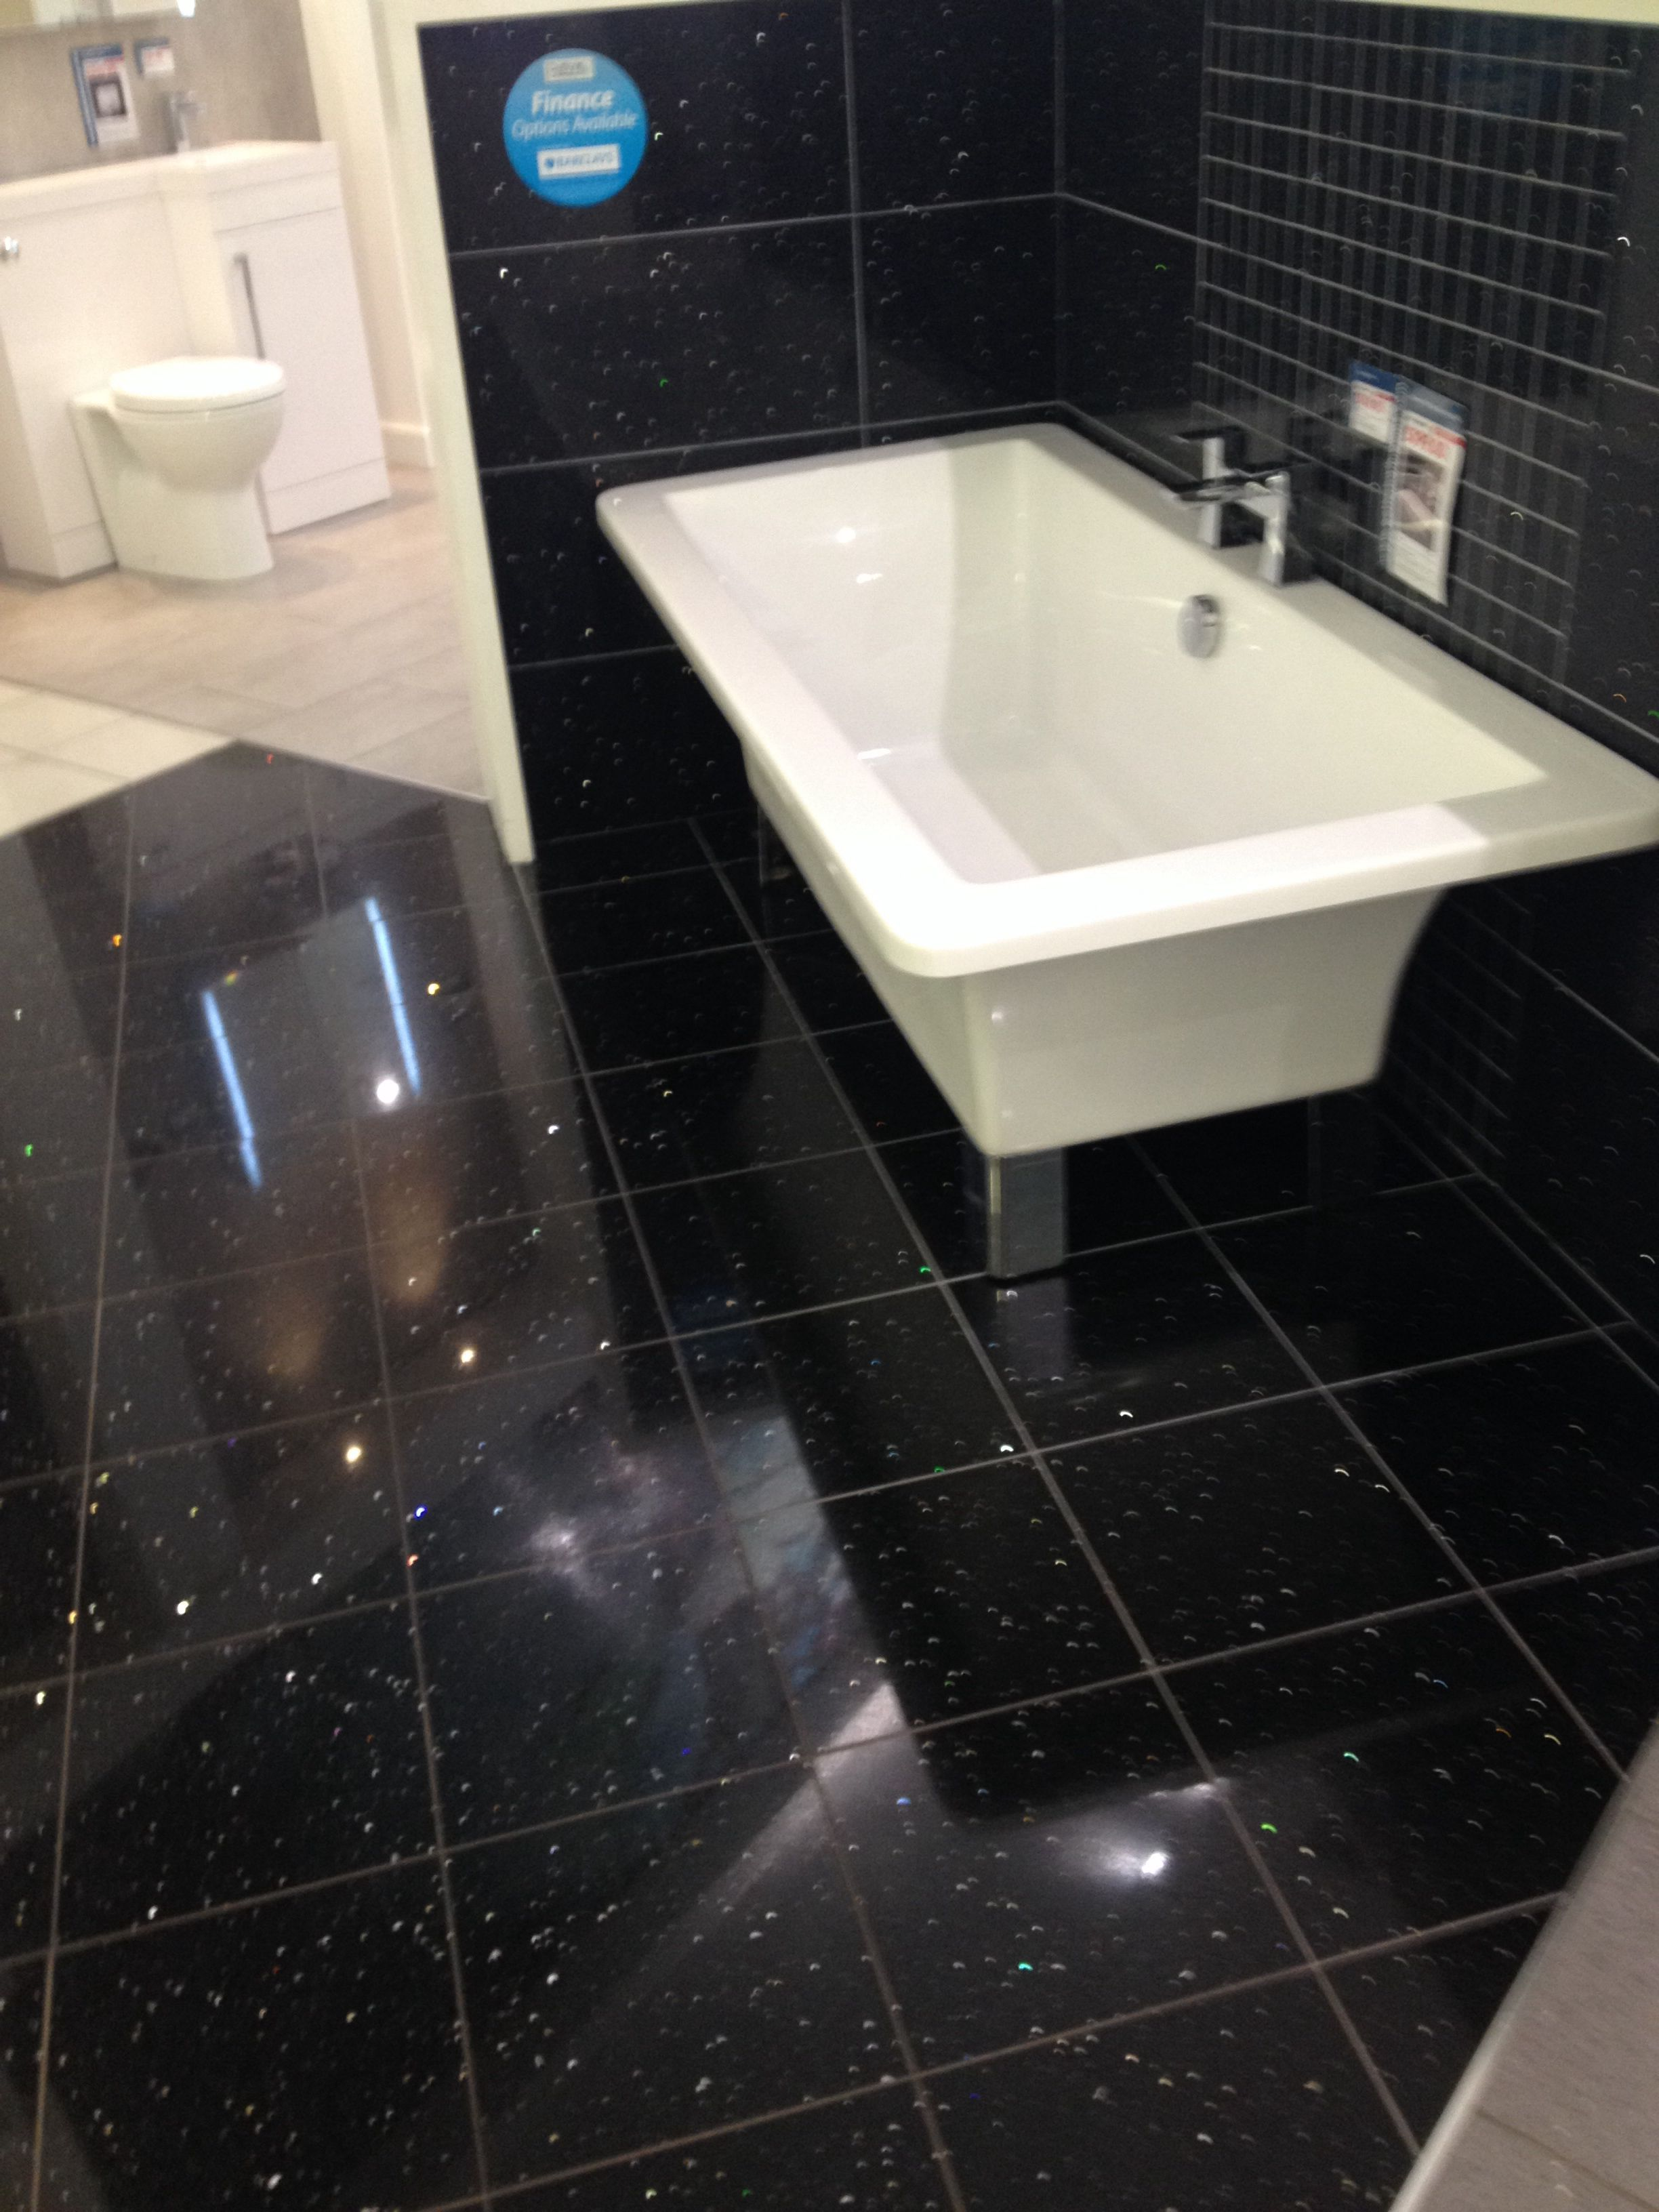 Black Sparkly Tiles Sparkly Tiles Glitter Bathroom Bathroom Flooring